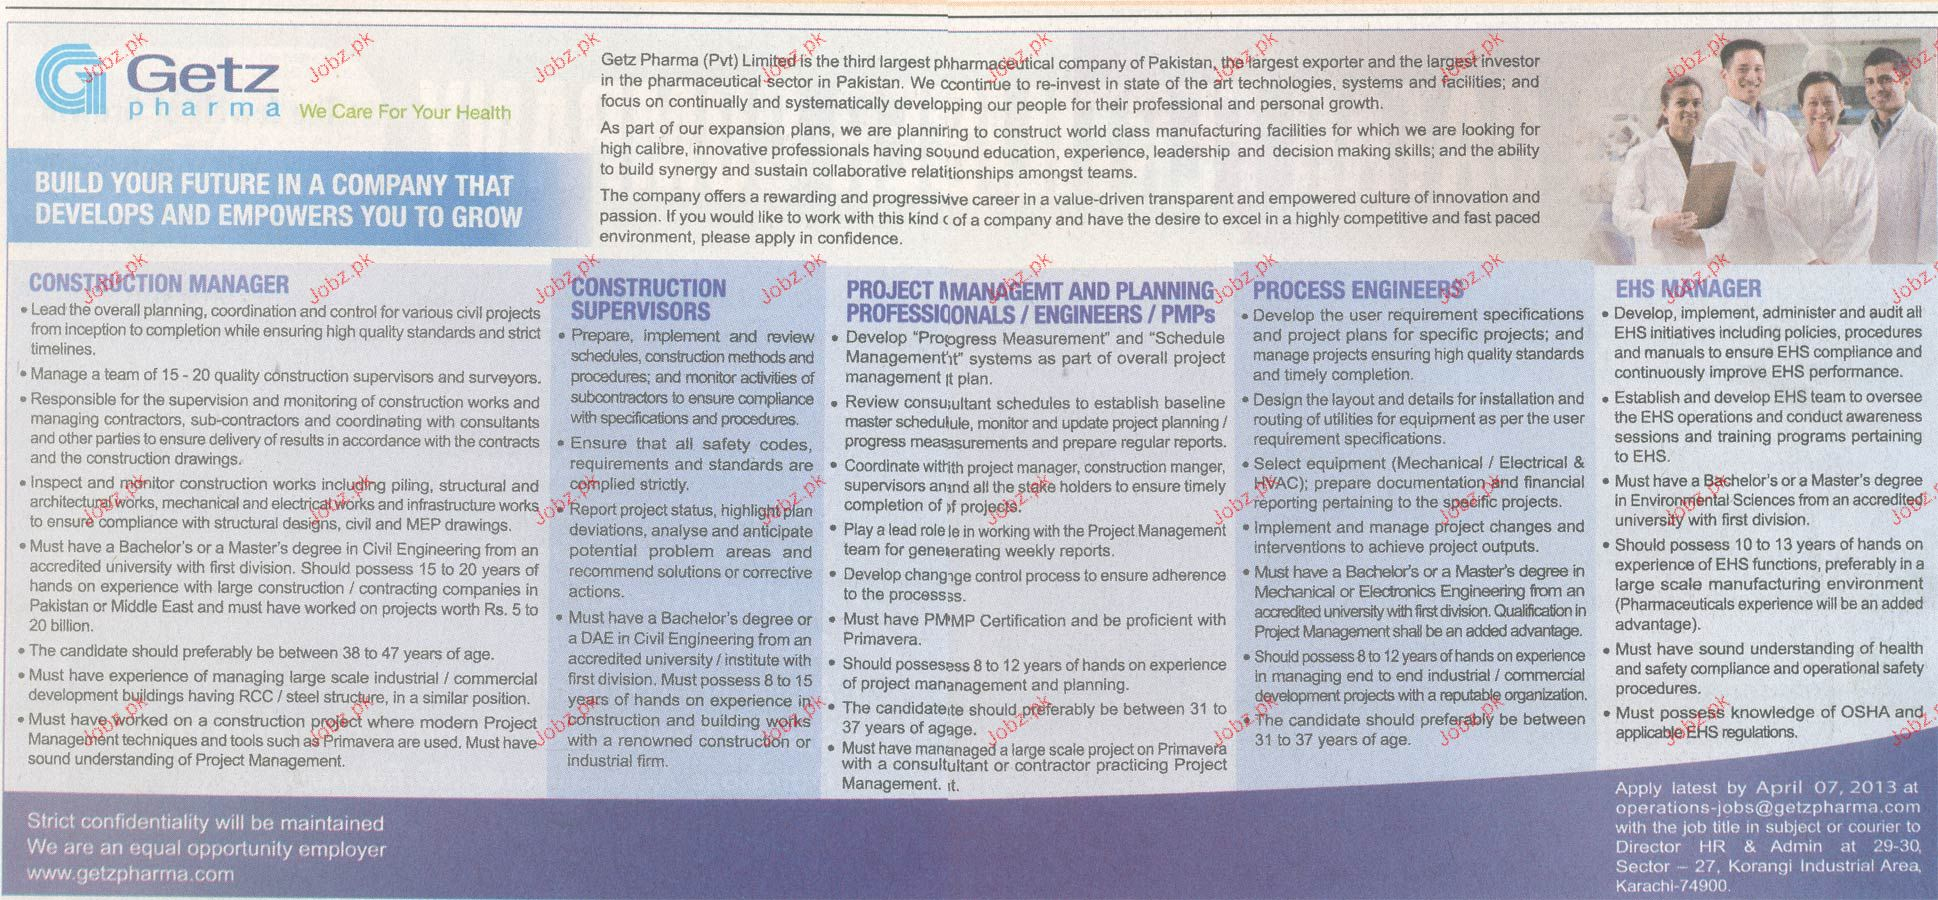 Project Manager, Construction Supervisors Wanted